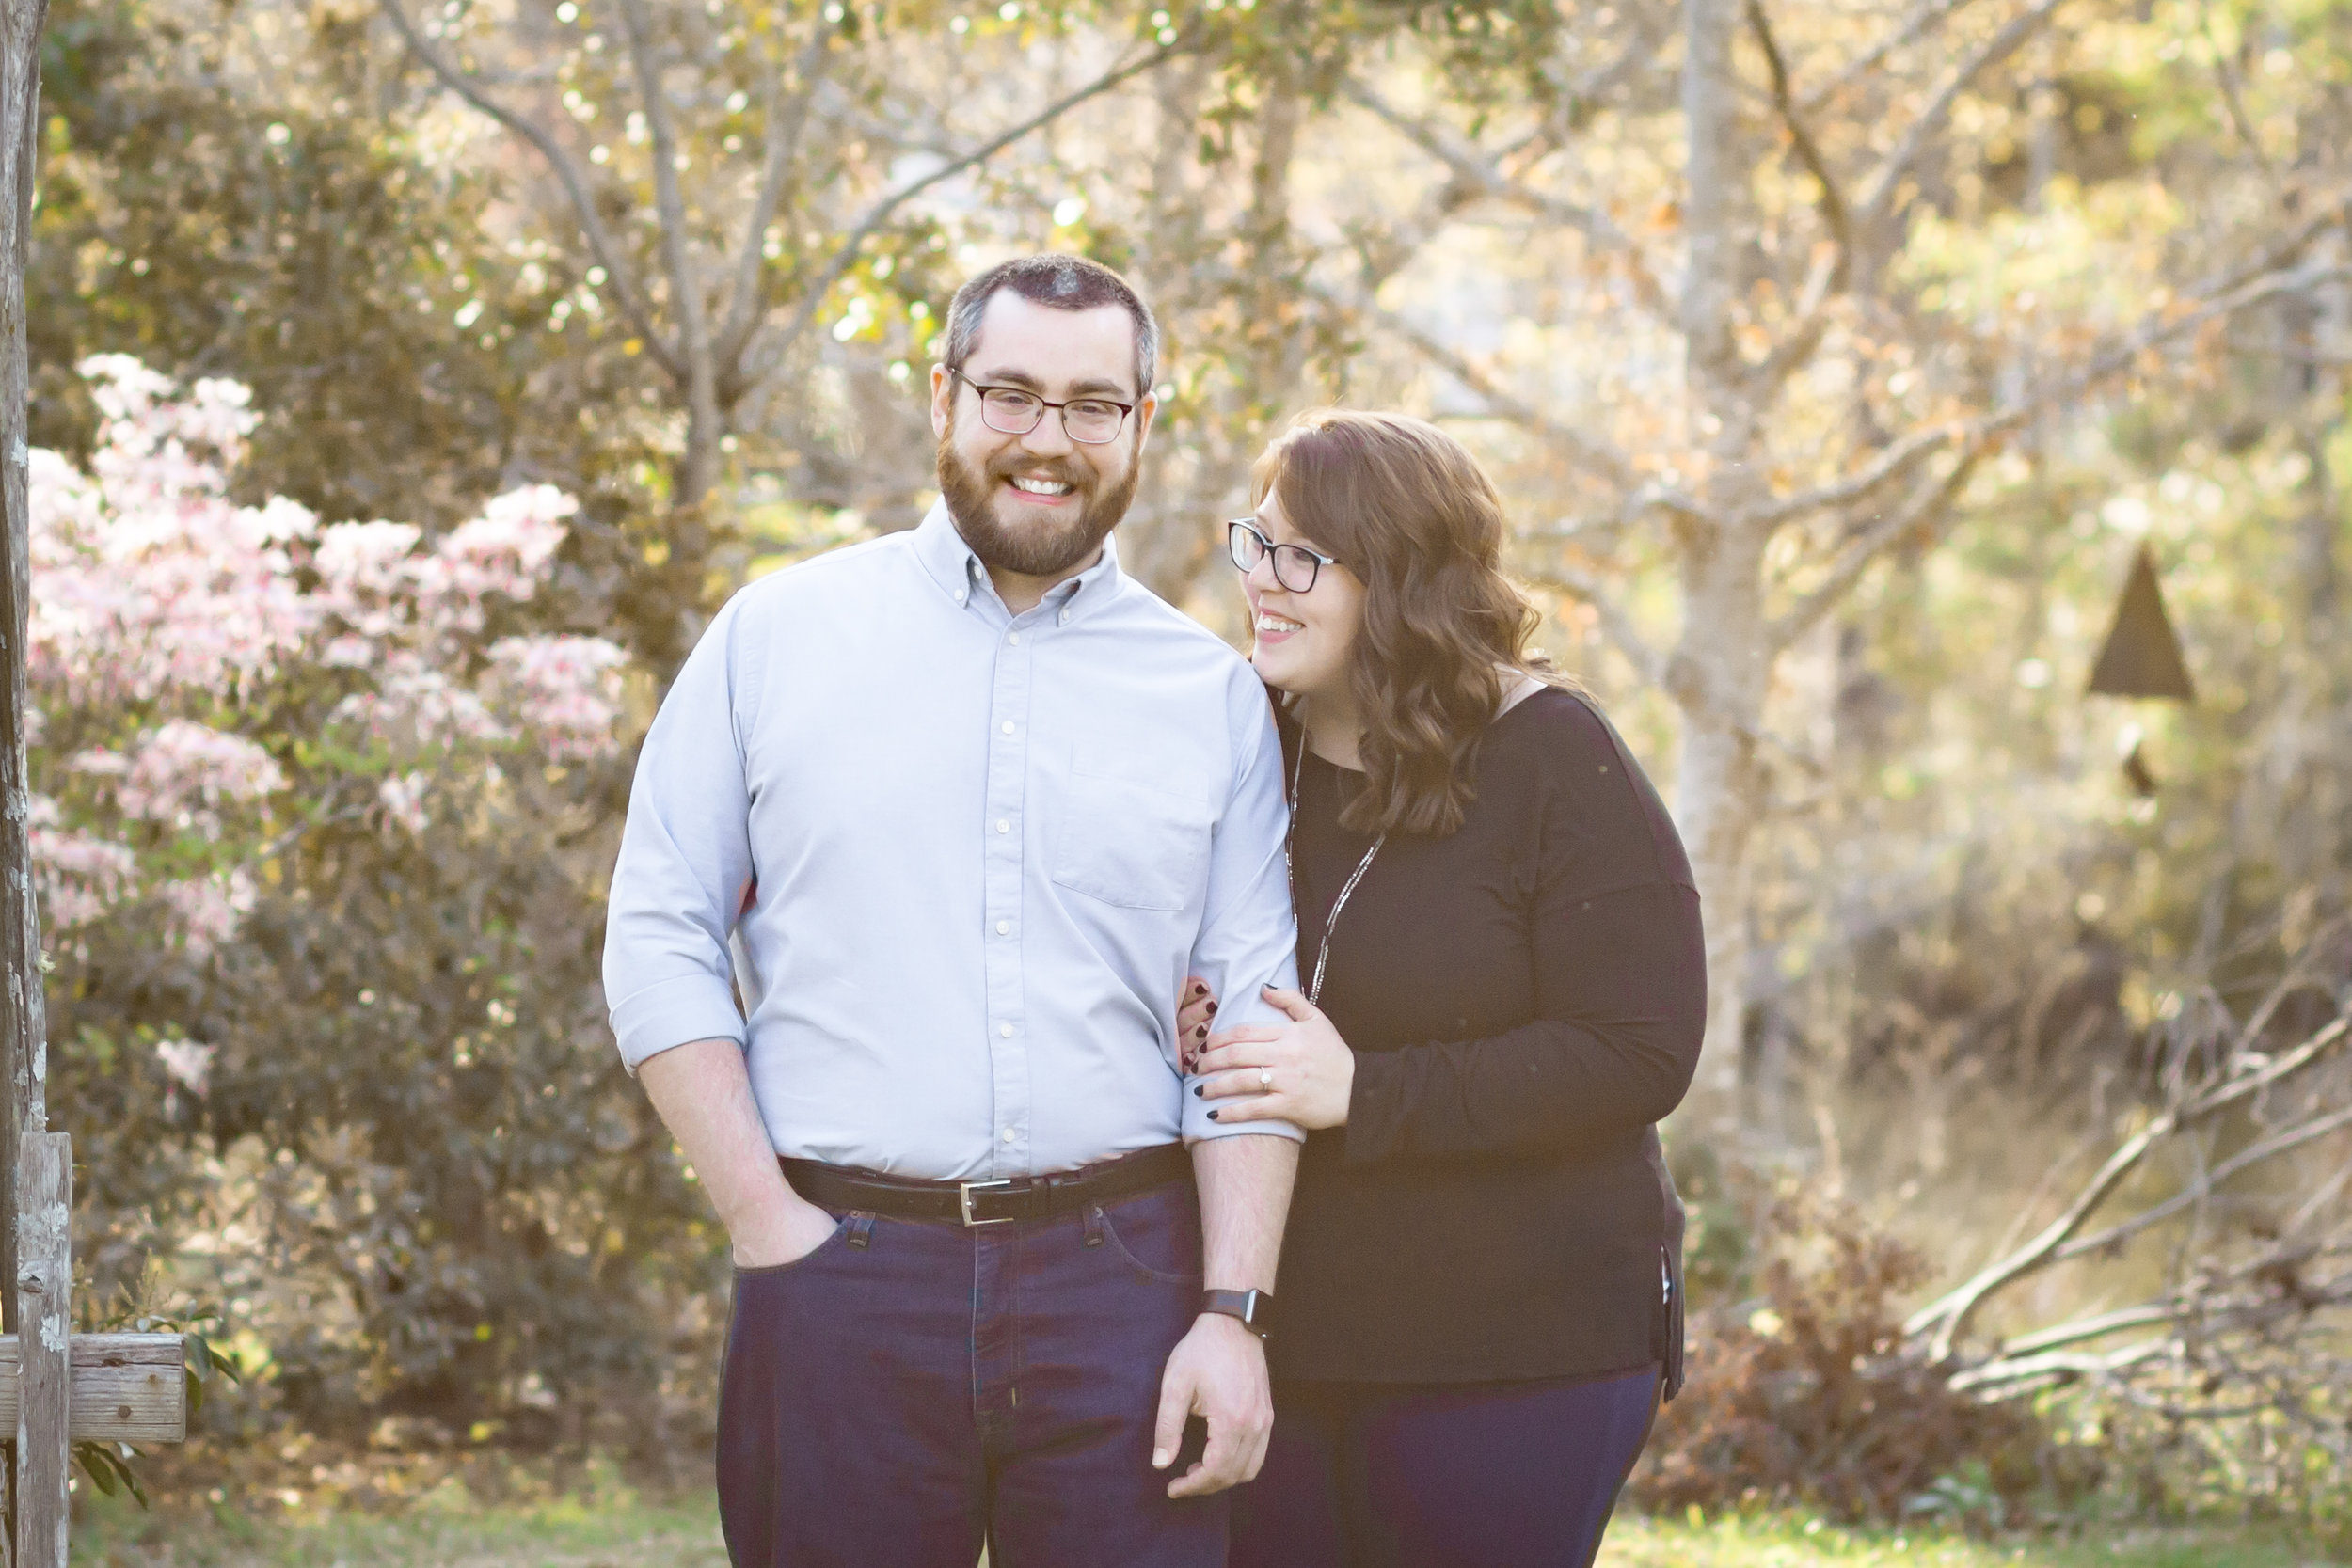 Beth-and-Jeff-engaged-2018-8.jpg